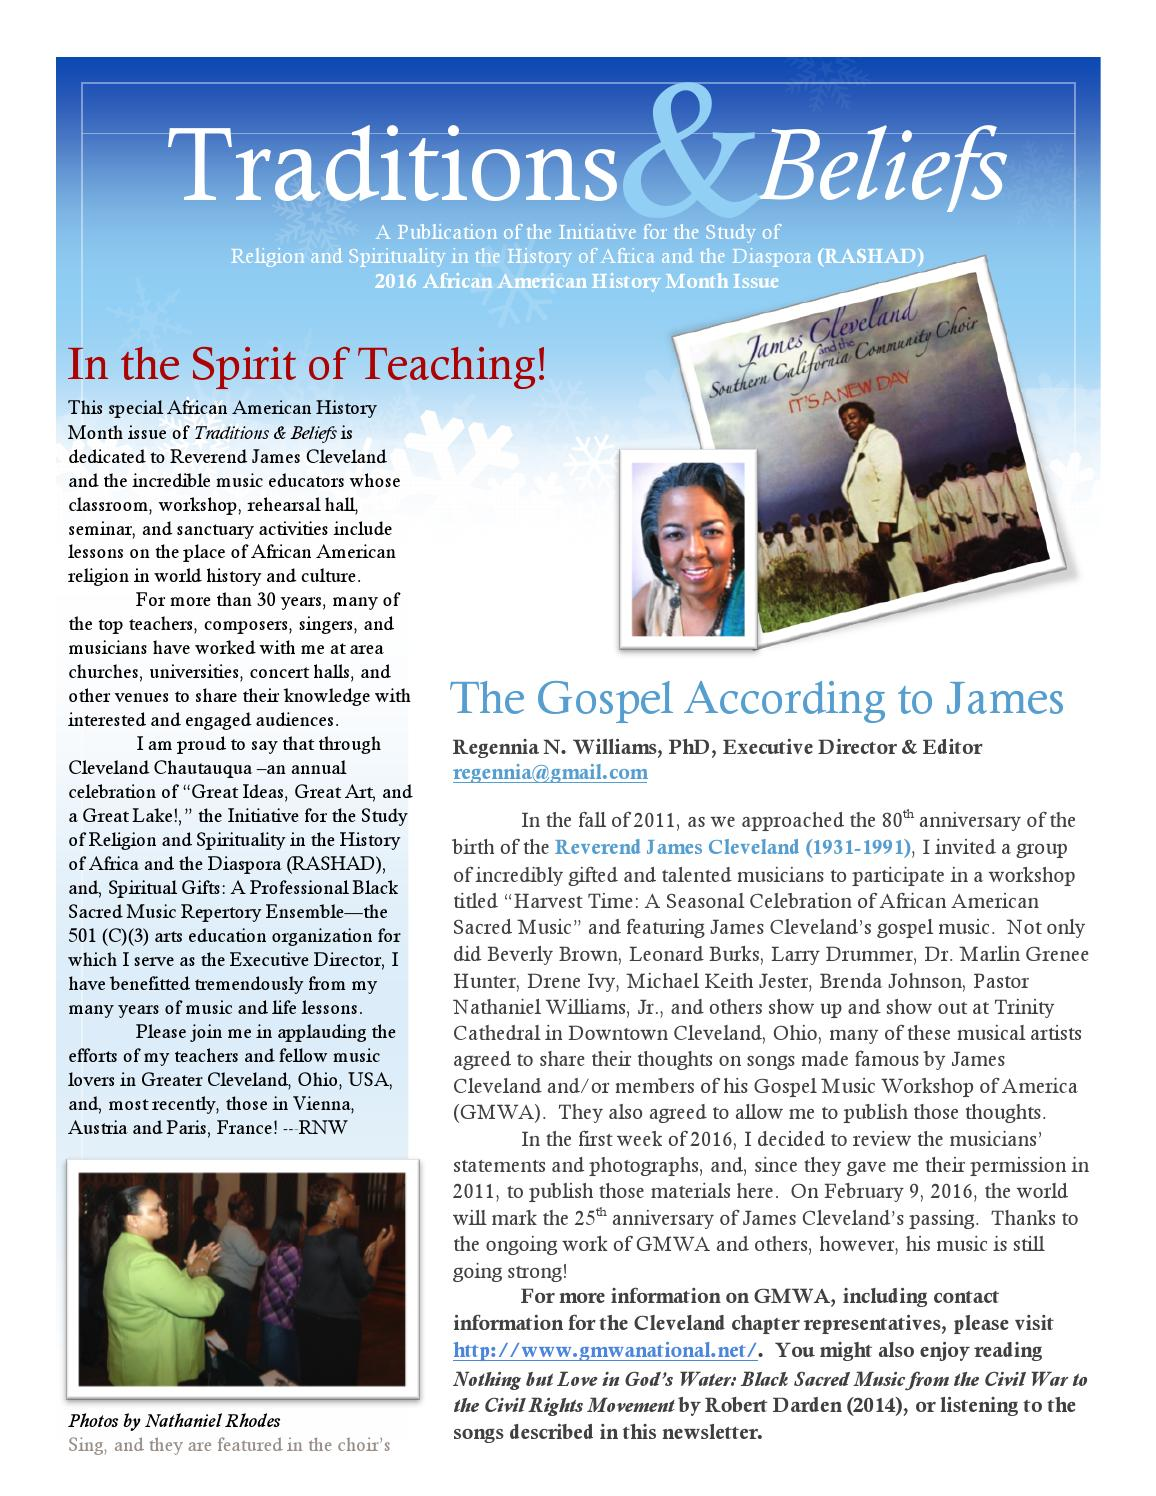 James cleveland gmwa traditions beliefs african american history james cleveland gmwa traditions beliefs african american history month 2016 by regennia n williams issuu ibookread ePUb